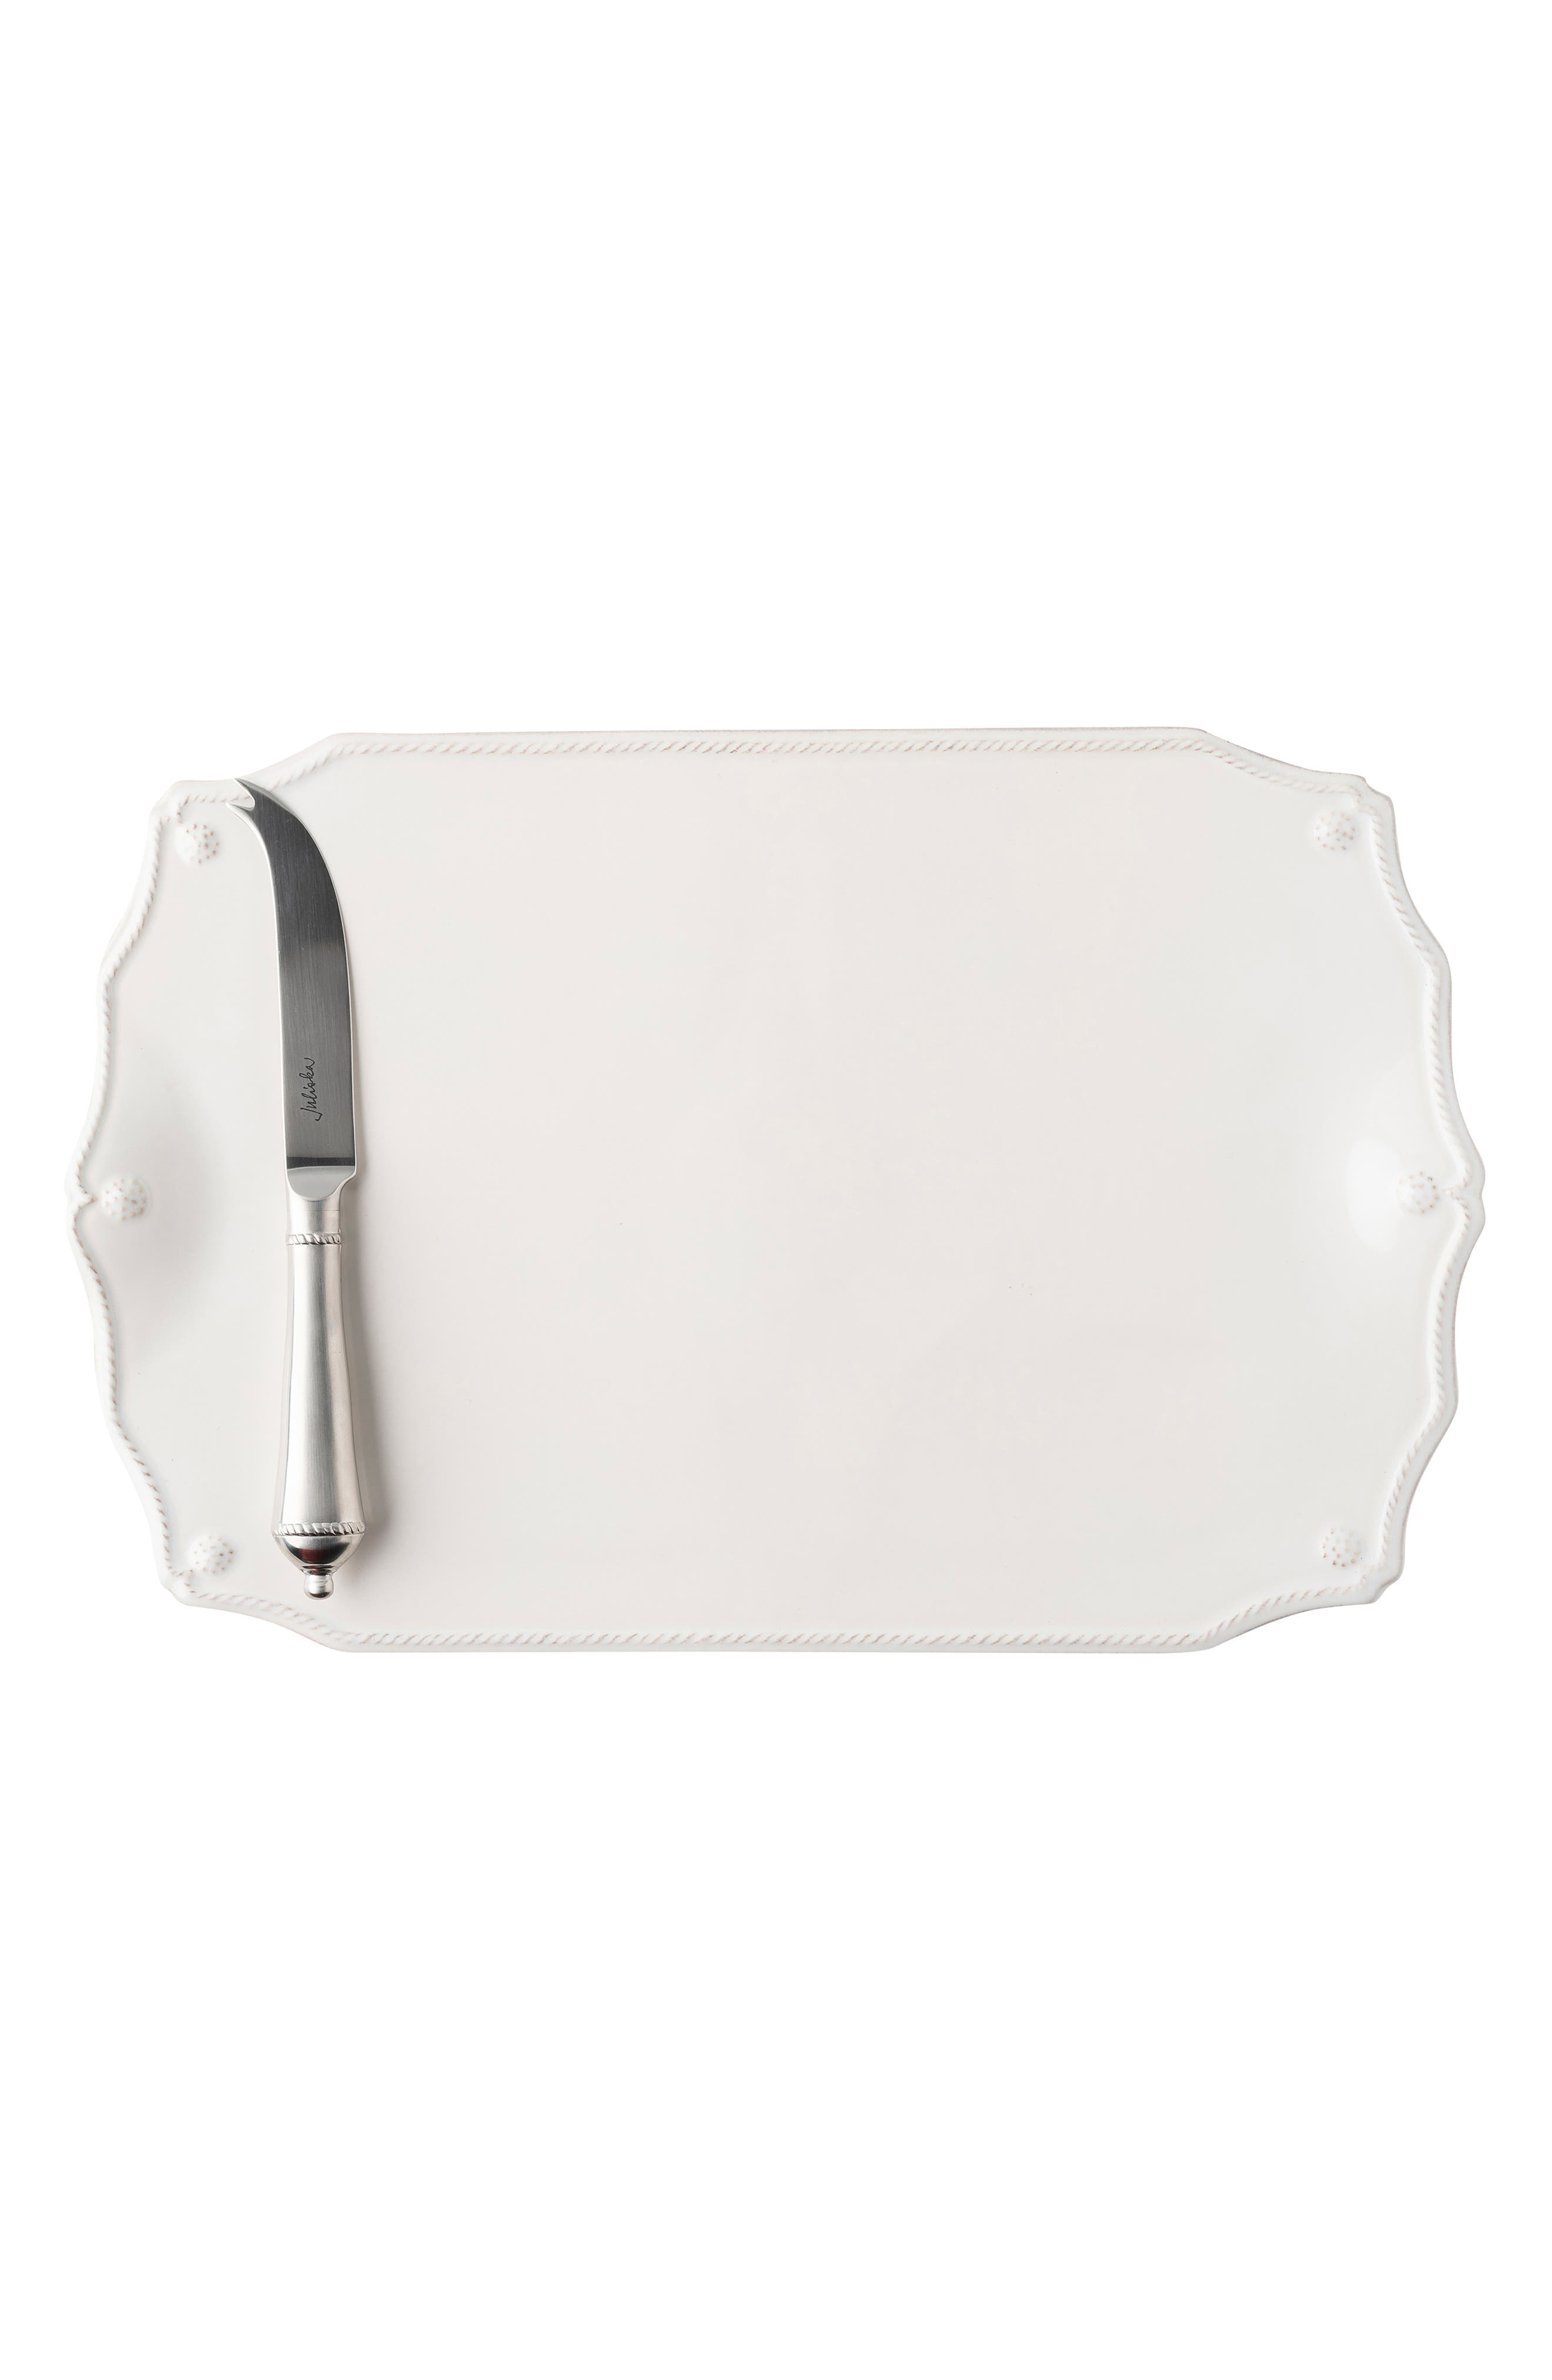 Berry and Thread Serving Board & Knife,                             Alternate thumbnail 2, color,                             WHITEWASH